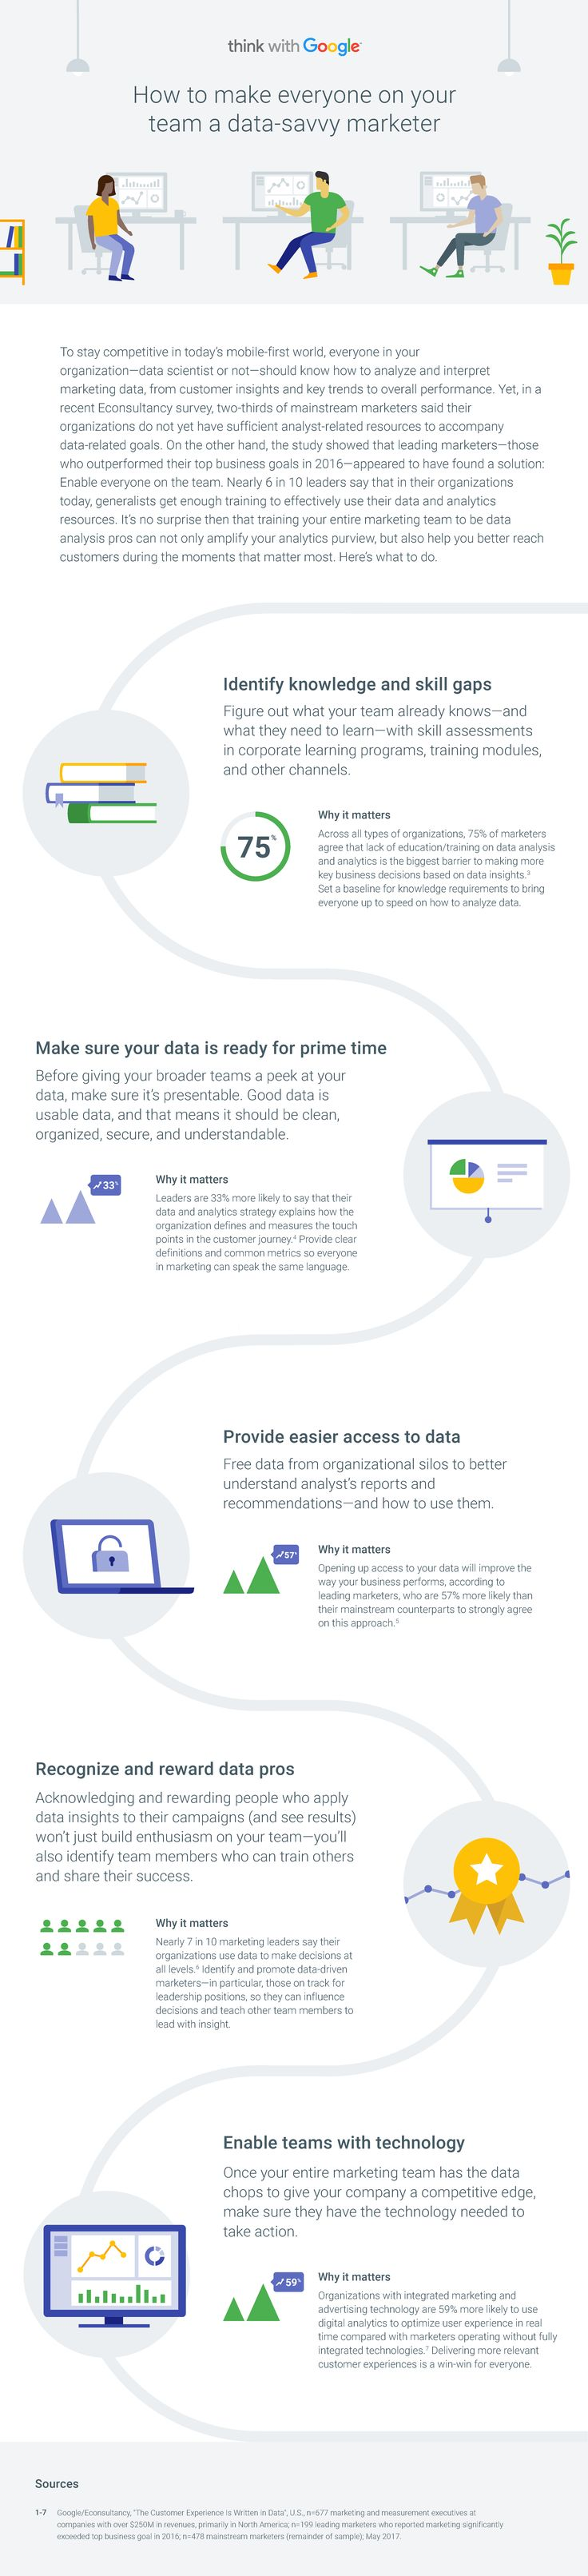 2cf77fa5a77bf11a9e567de2c196faa9 Marketing Infographic : #Infographic: How to make everyone on your team a data-savvy marketer 👨‍...